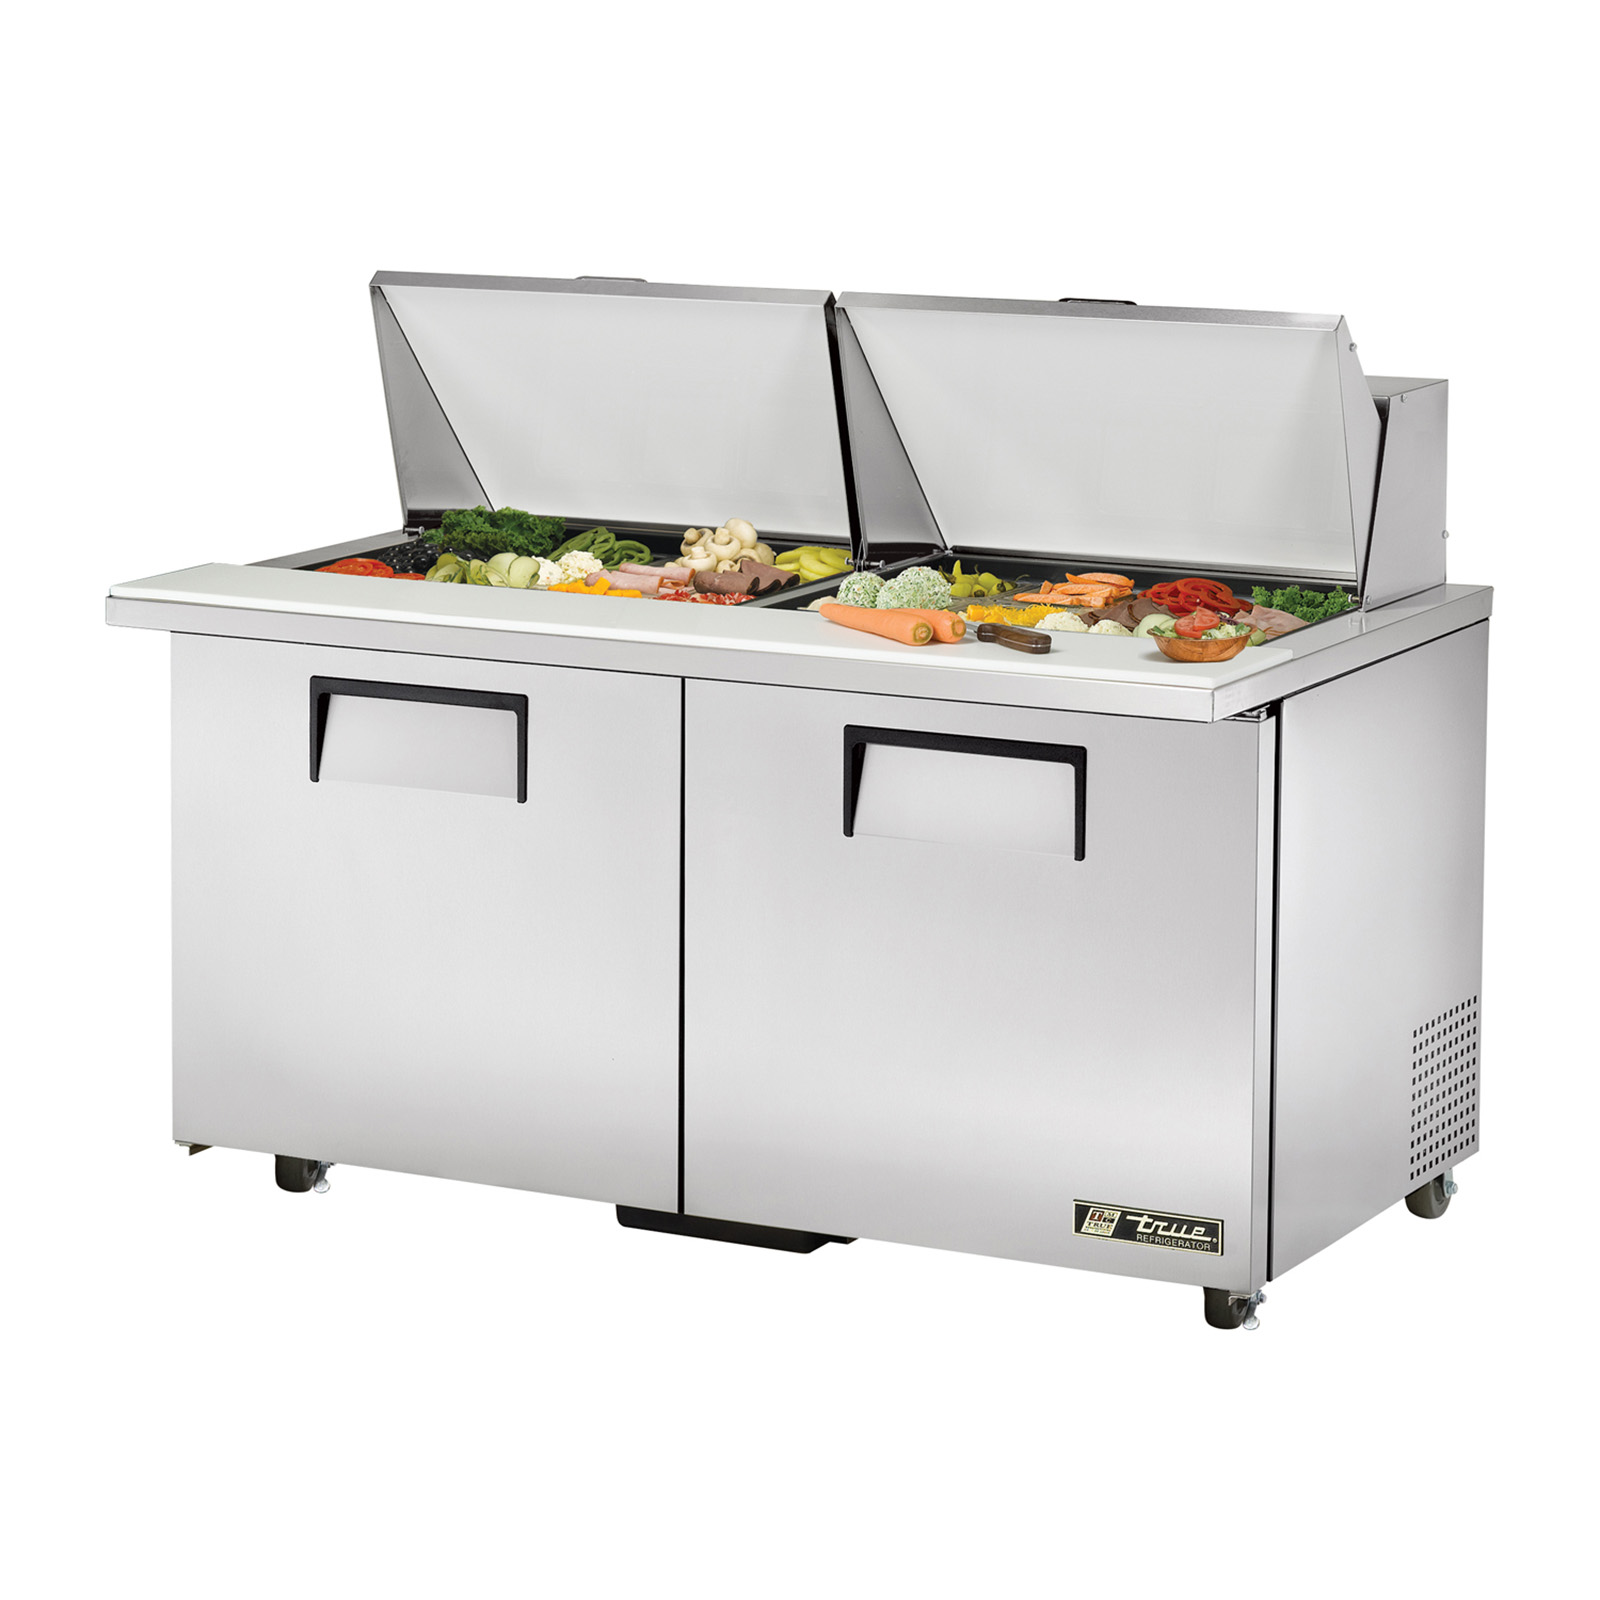 TSSU-60-24M-B-ST-ADA True - ADA Compliant Mega Top Sandwich/Salad Unit (24) 1/6 (4